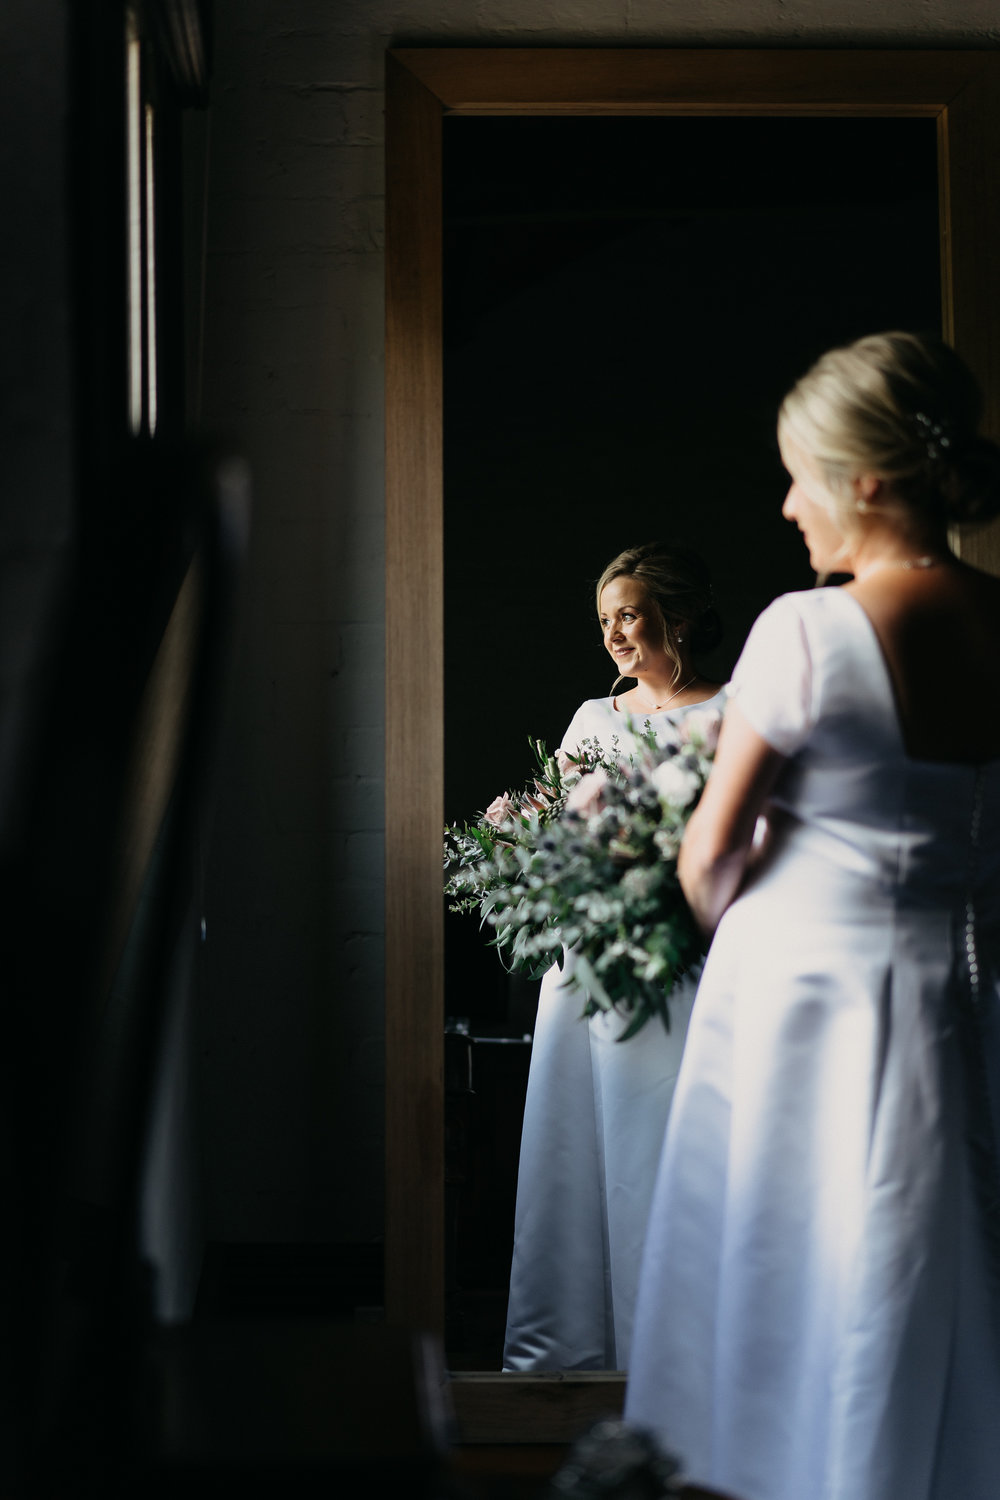 Melbourne-Wedding-Photographer-1001.jpg